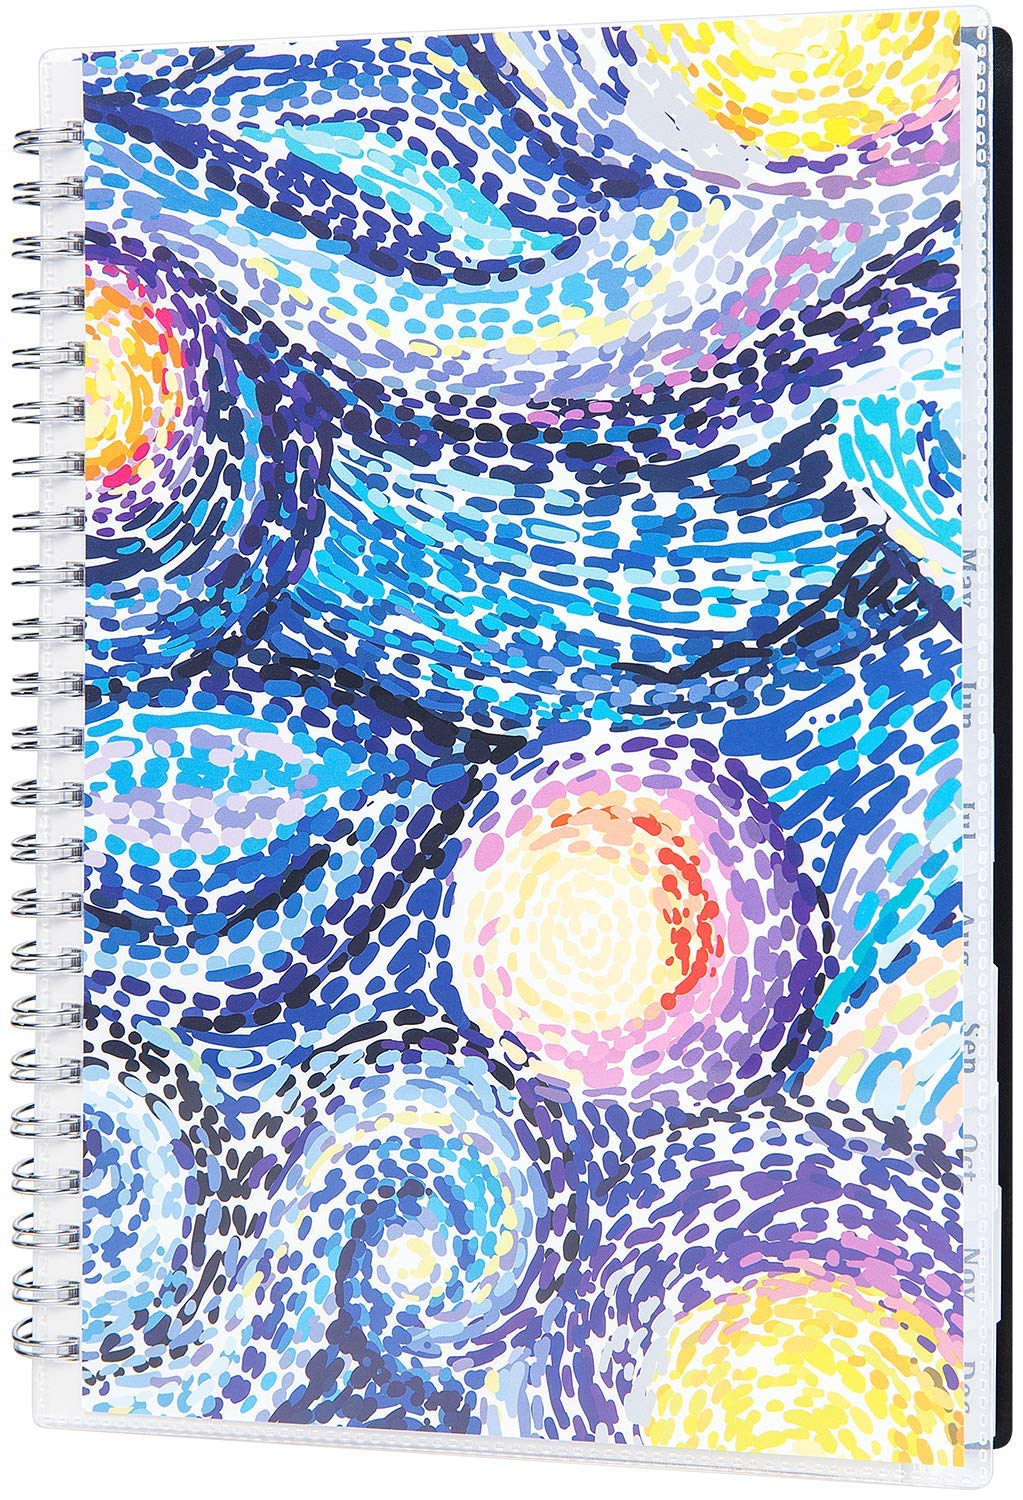 2019 Planner - Planner 2019, Weekly & Monthly Planner, 12 Monthly Tabs, Twin Wire Binding, Clear Cover Pockets, 5'' x 8''